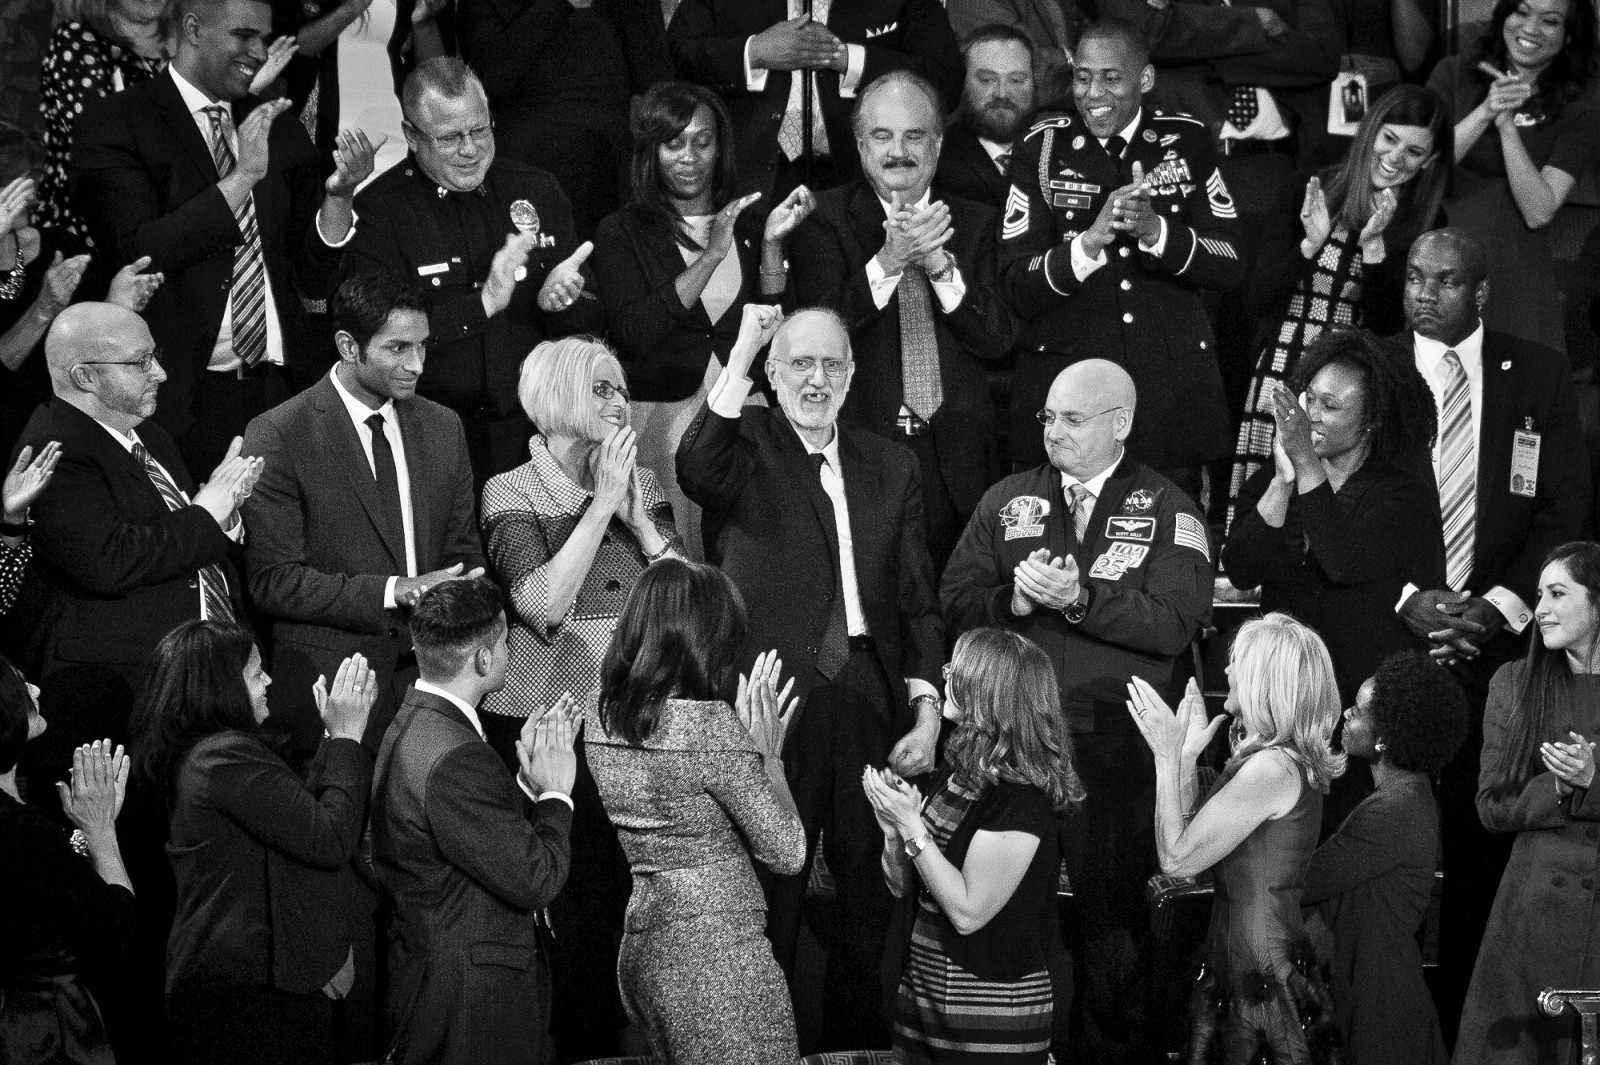 Former Cuban captive Alan Gross acknowledges the applause after being recognised by U.S. President Barack Obama during the State of the Union address to a joint session of Congress at the Capitol in Washington, District of Columbia, U.S., on Tuesday, Jan. 20, 2015.